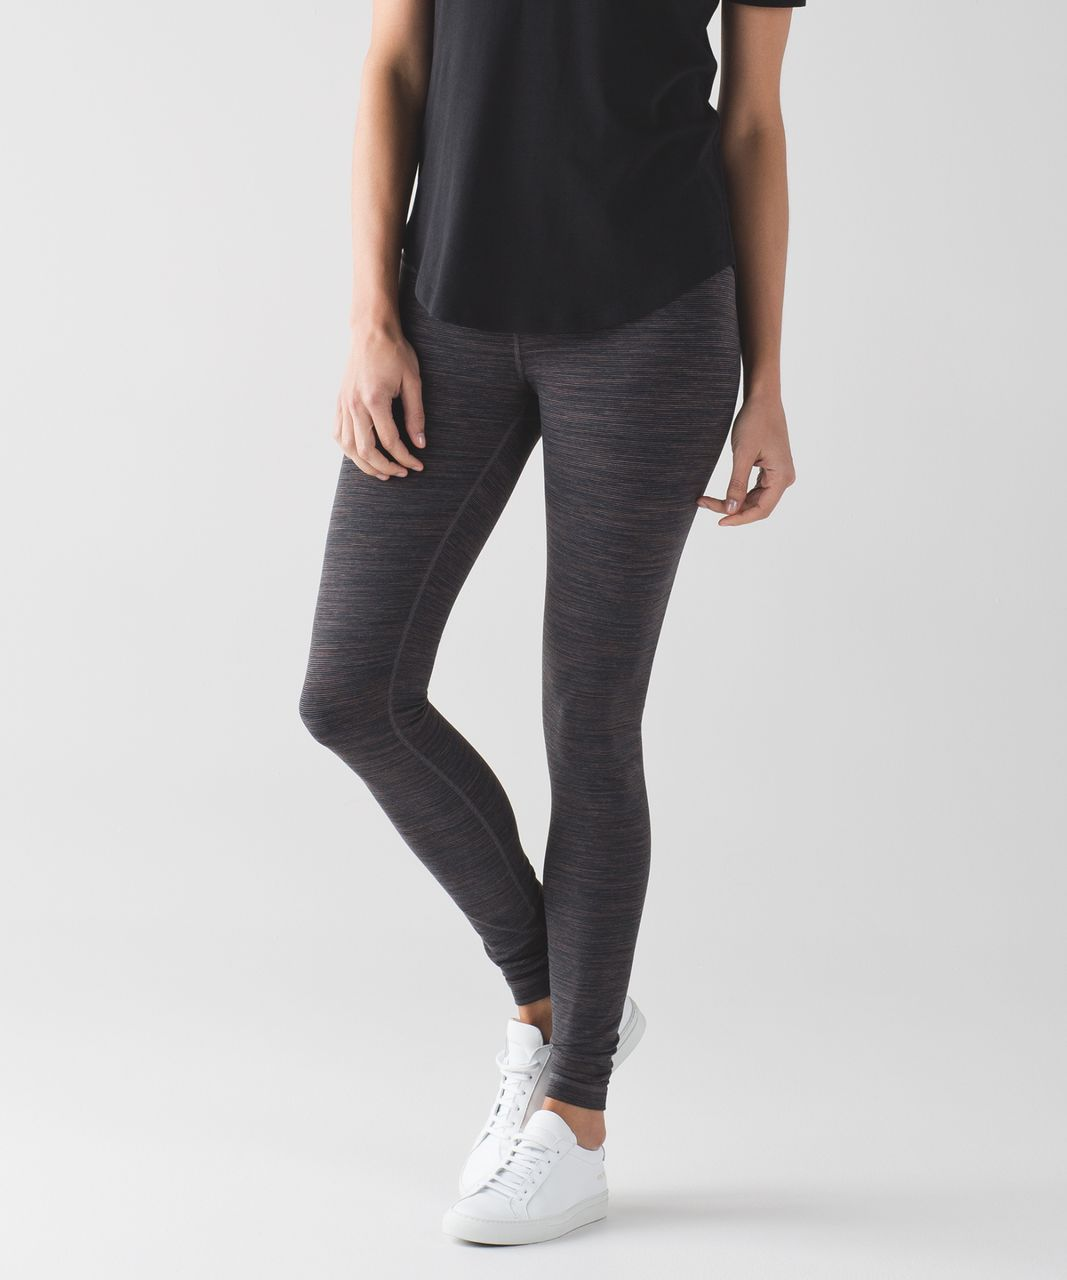 Lululemon Wunder Under Pant (Hi-Rise) - Wee Are From Space Cool Cocoa Soot Light